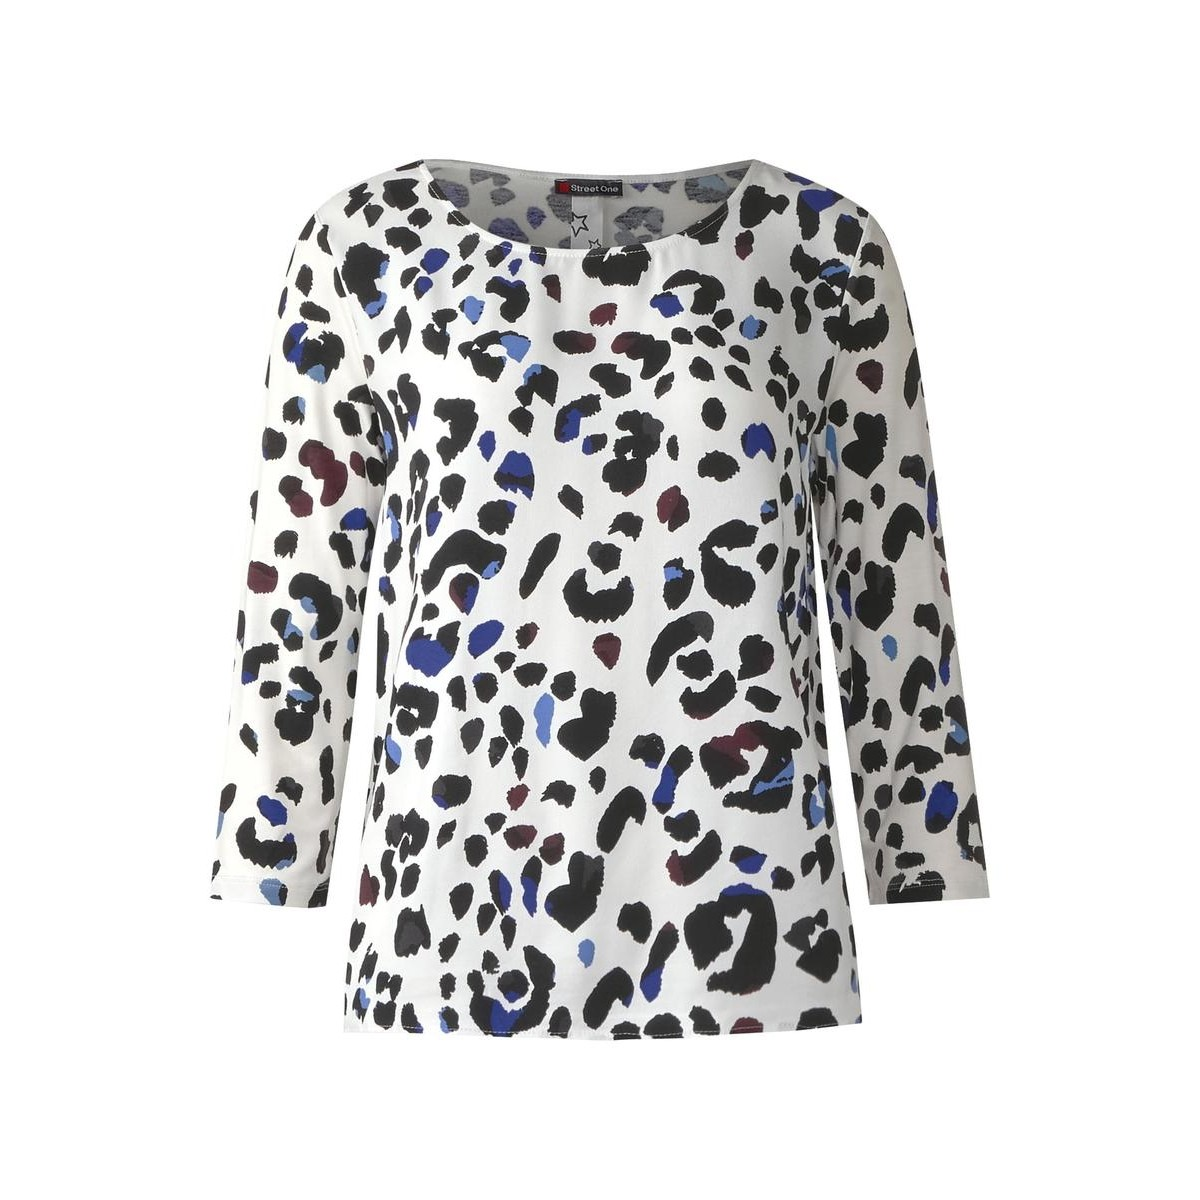 Casual Leo Print Shirt By Street One Blue Black White 34 Pattern